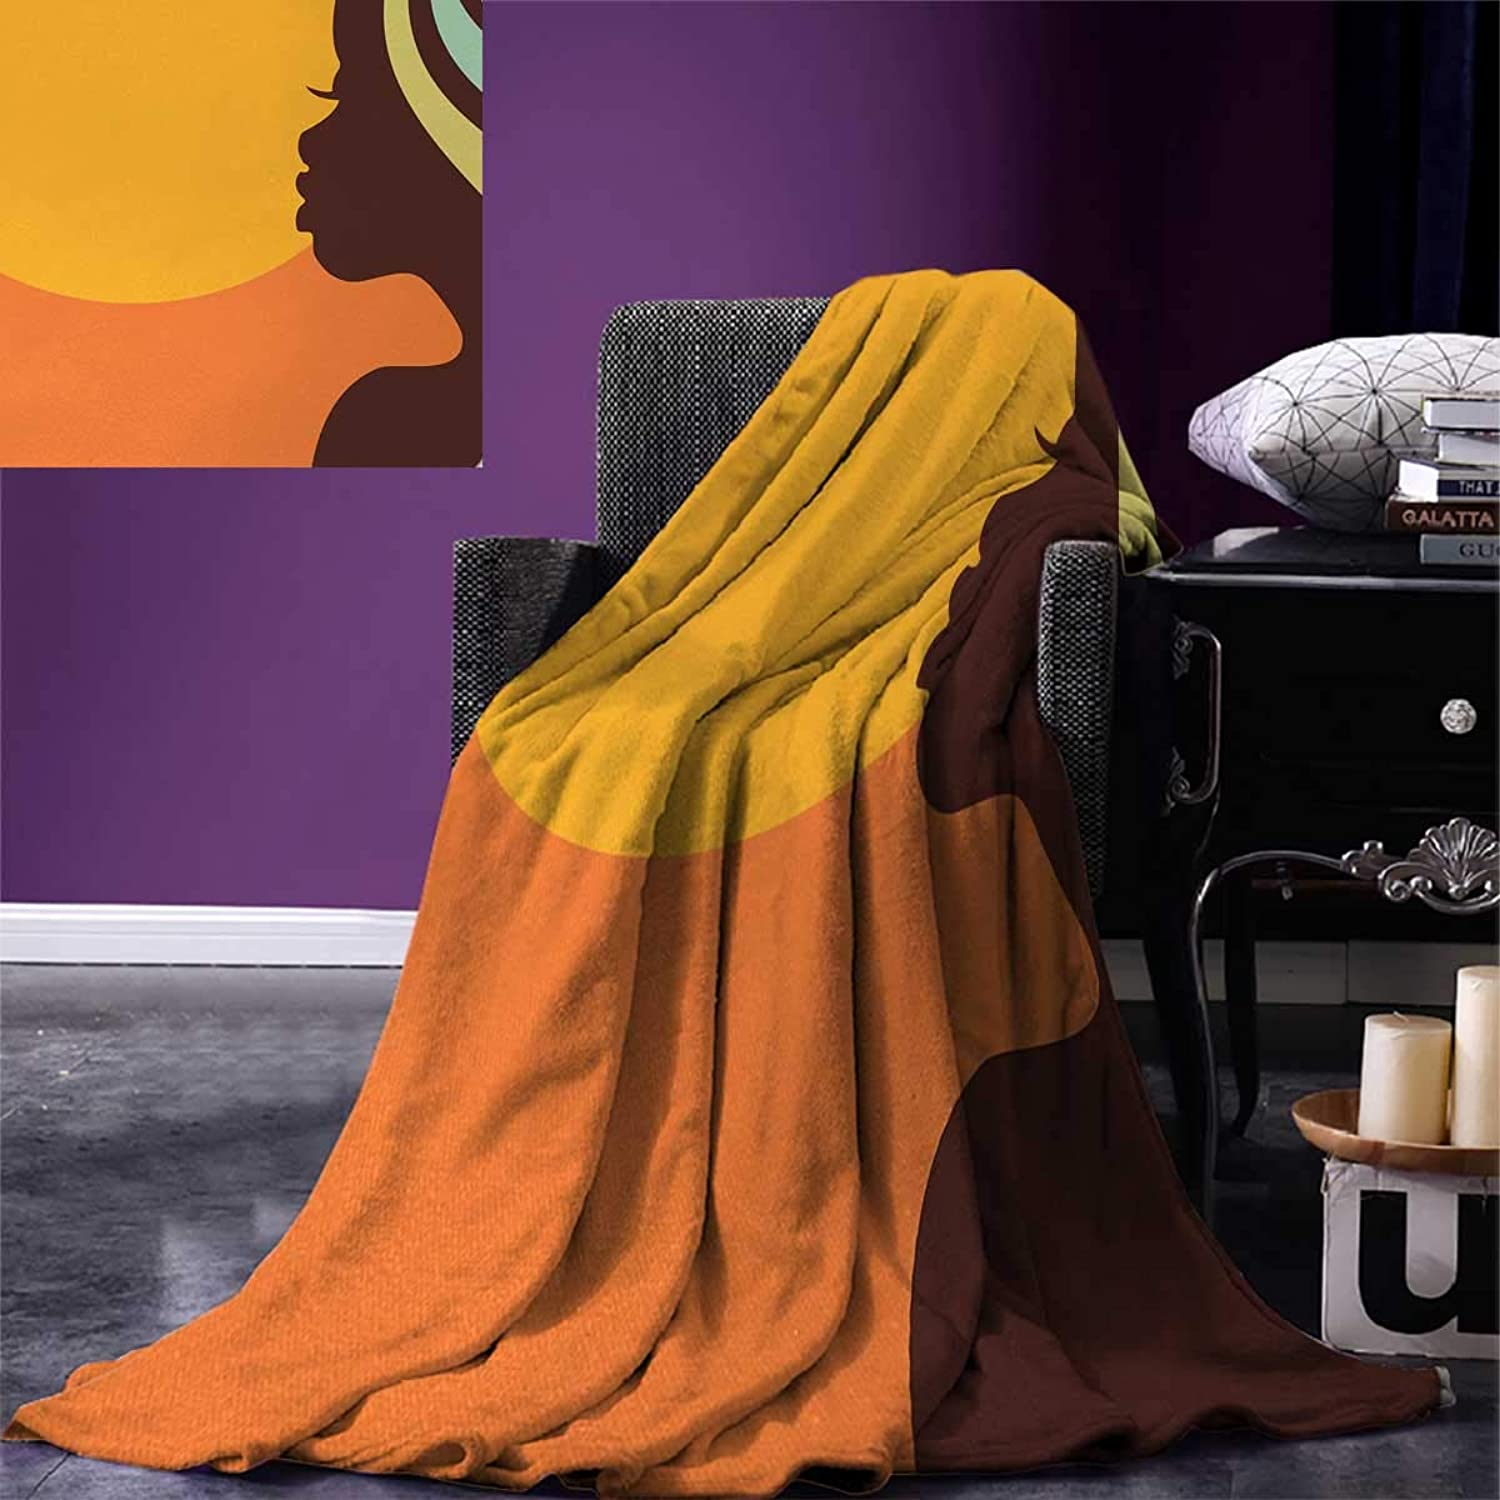 Anniutwo African Woman Travel Throw Blanket Teenage Girl Pretty Face Profile Abstract Sunset Calm Evening Velvet Plush Throw Blanket 60 x50  orange Salmon Dark Brown